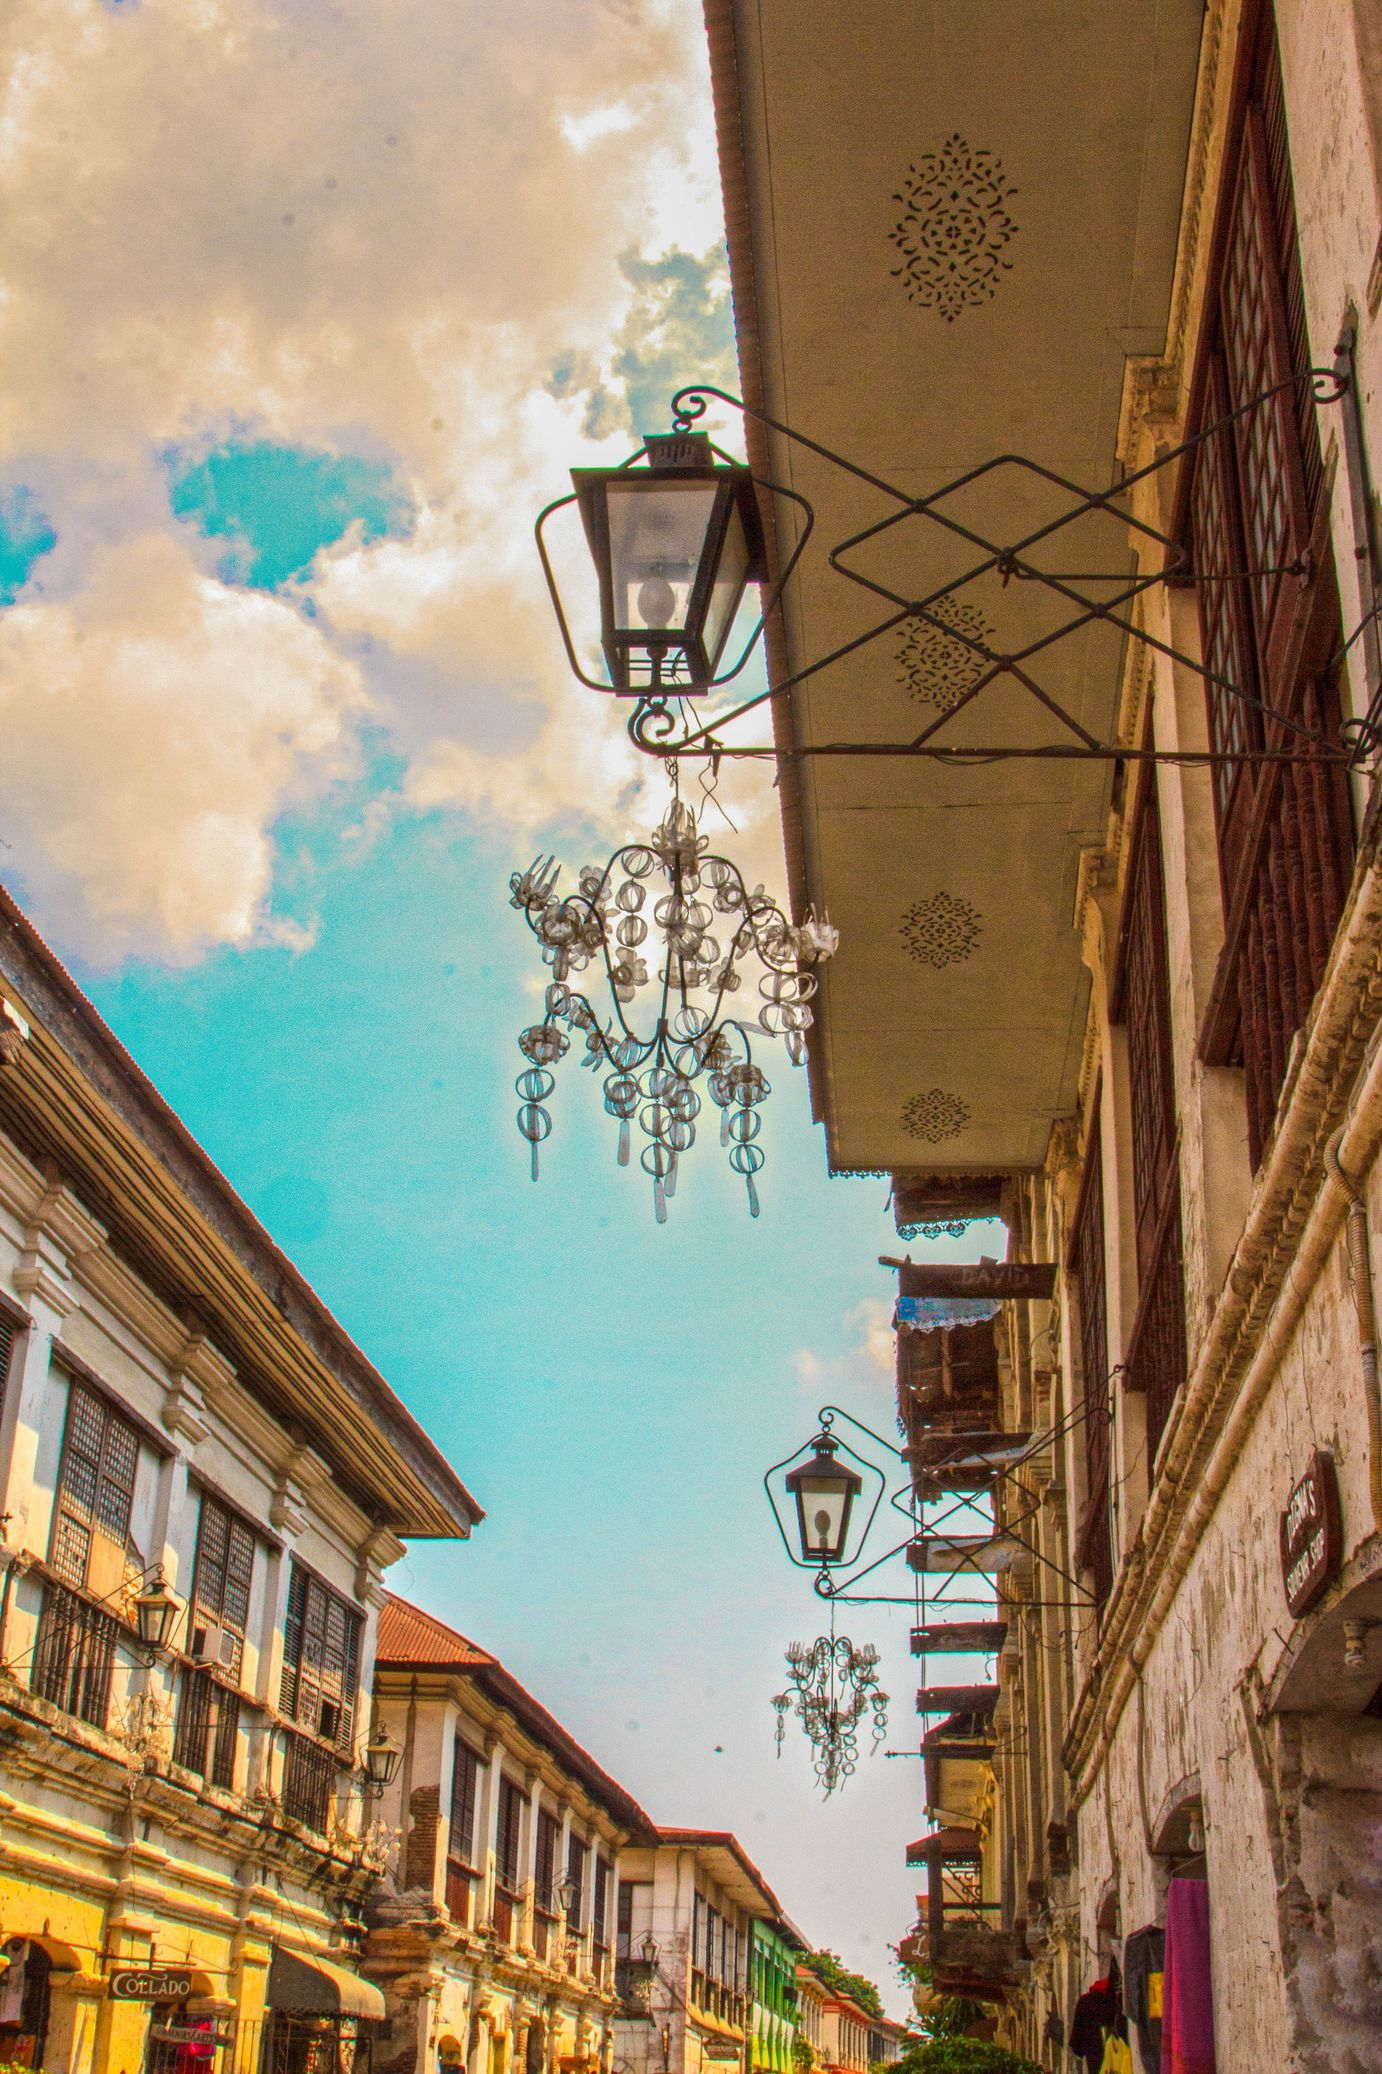 Lamps hang on wrought-iron posts on Spanish colonial houses in Vigan City, one of the most amazing places to visit in the Philippines